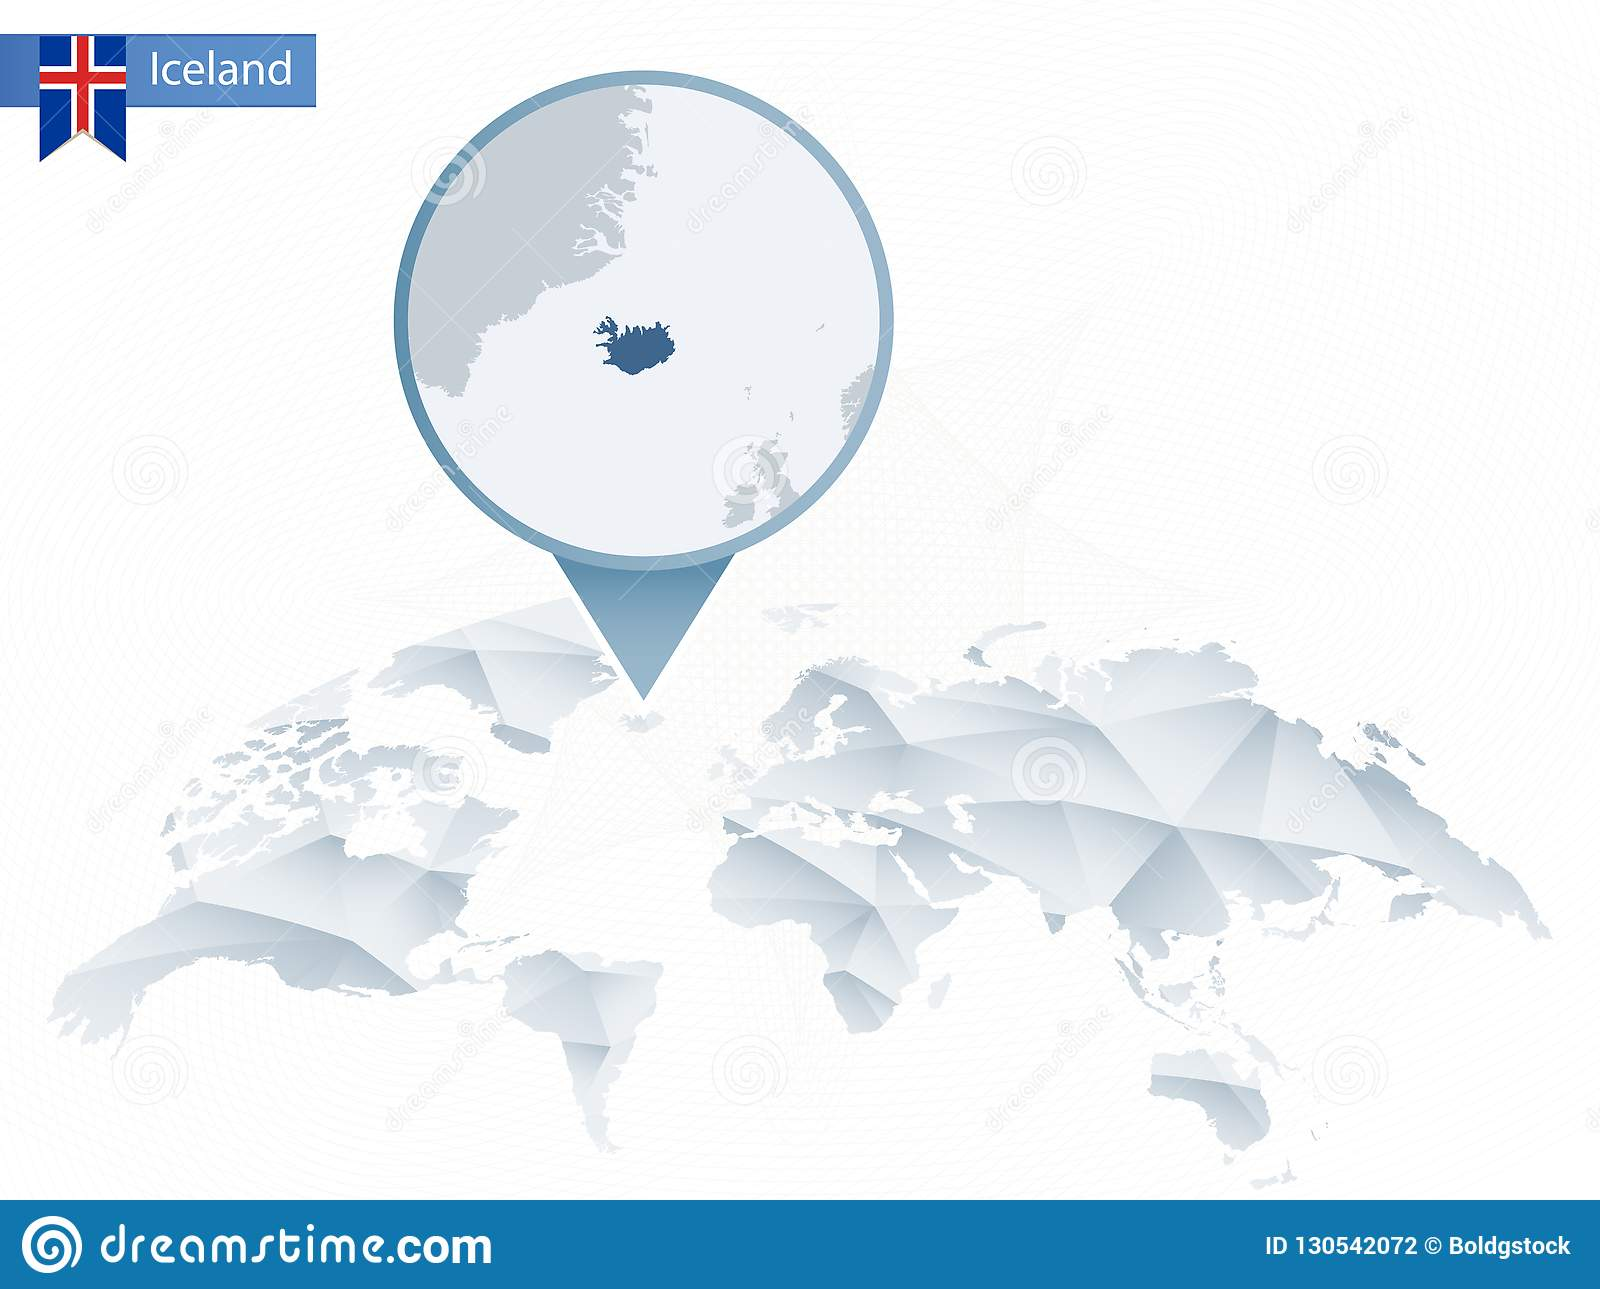 Abstract Rounded World Map With Pinned Detailed Iceland Map. Stock ...